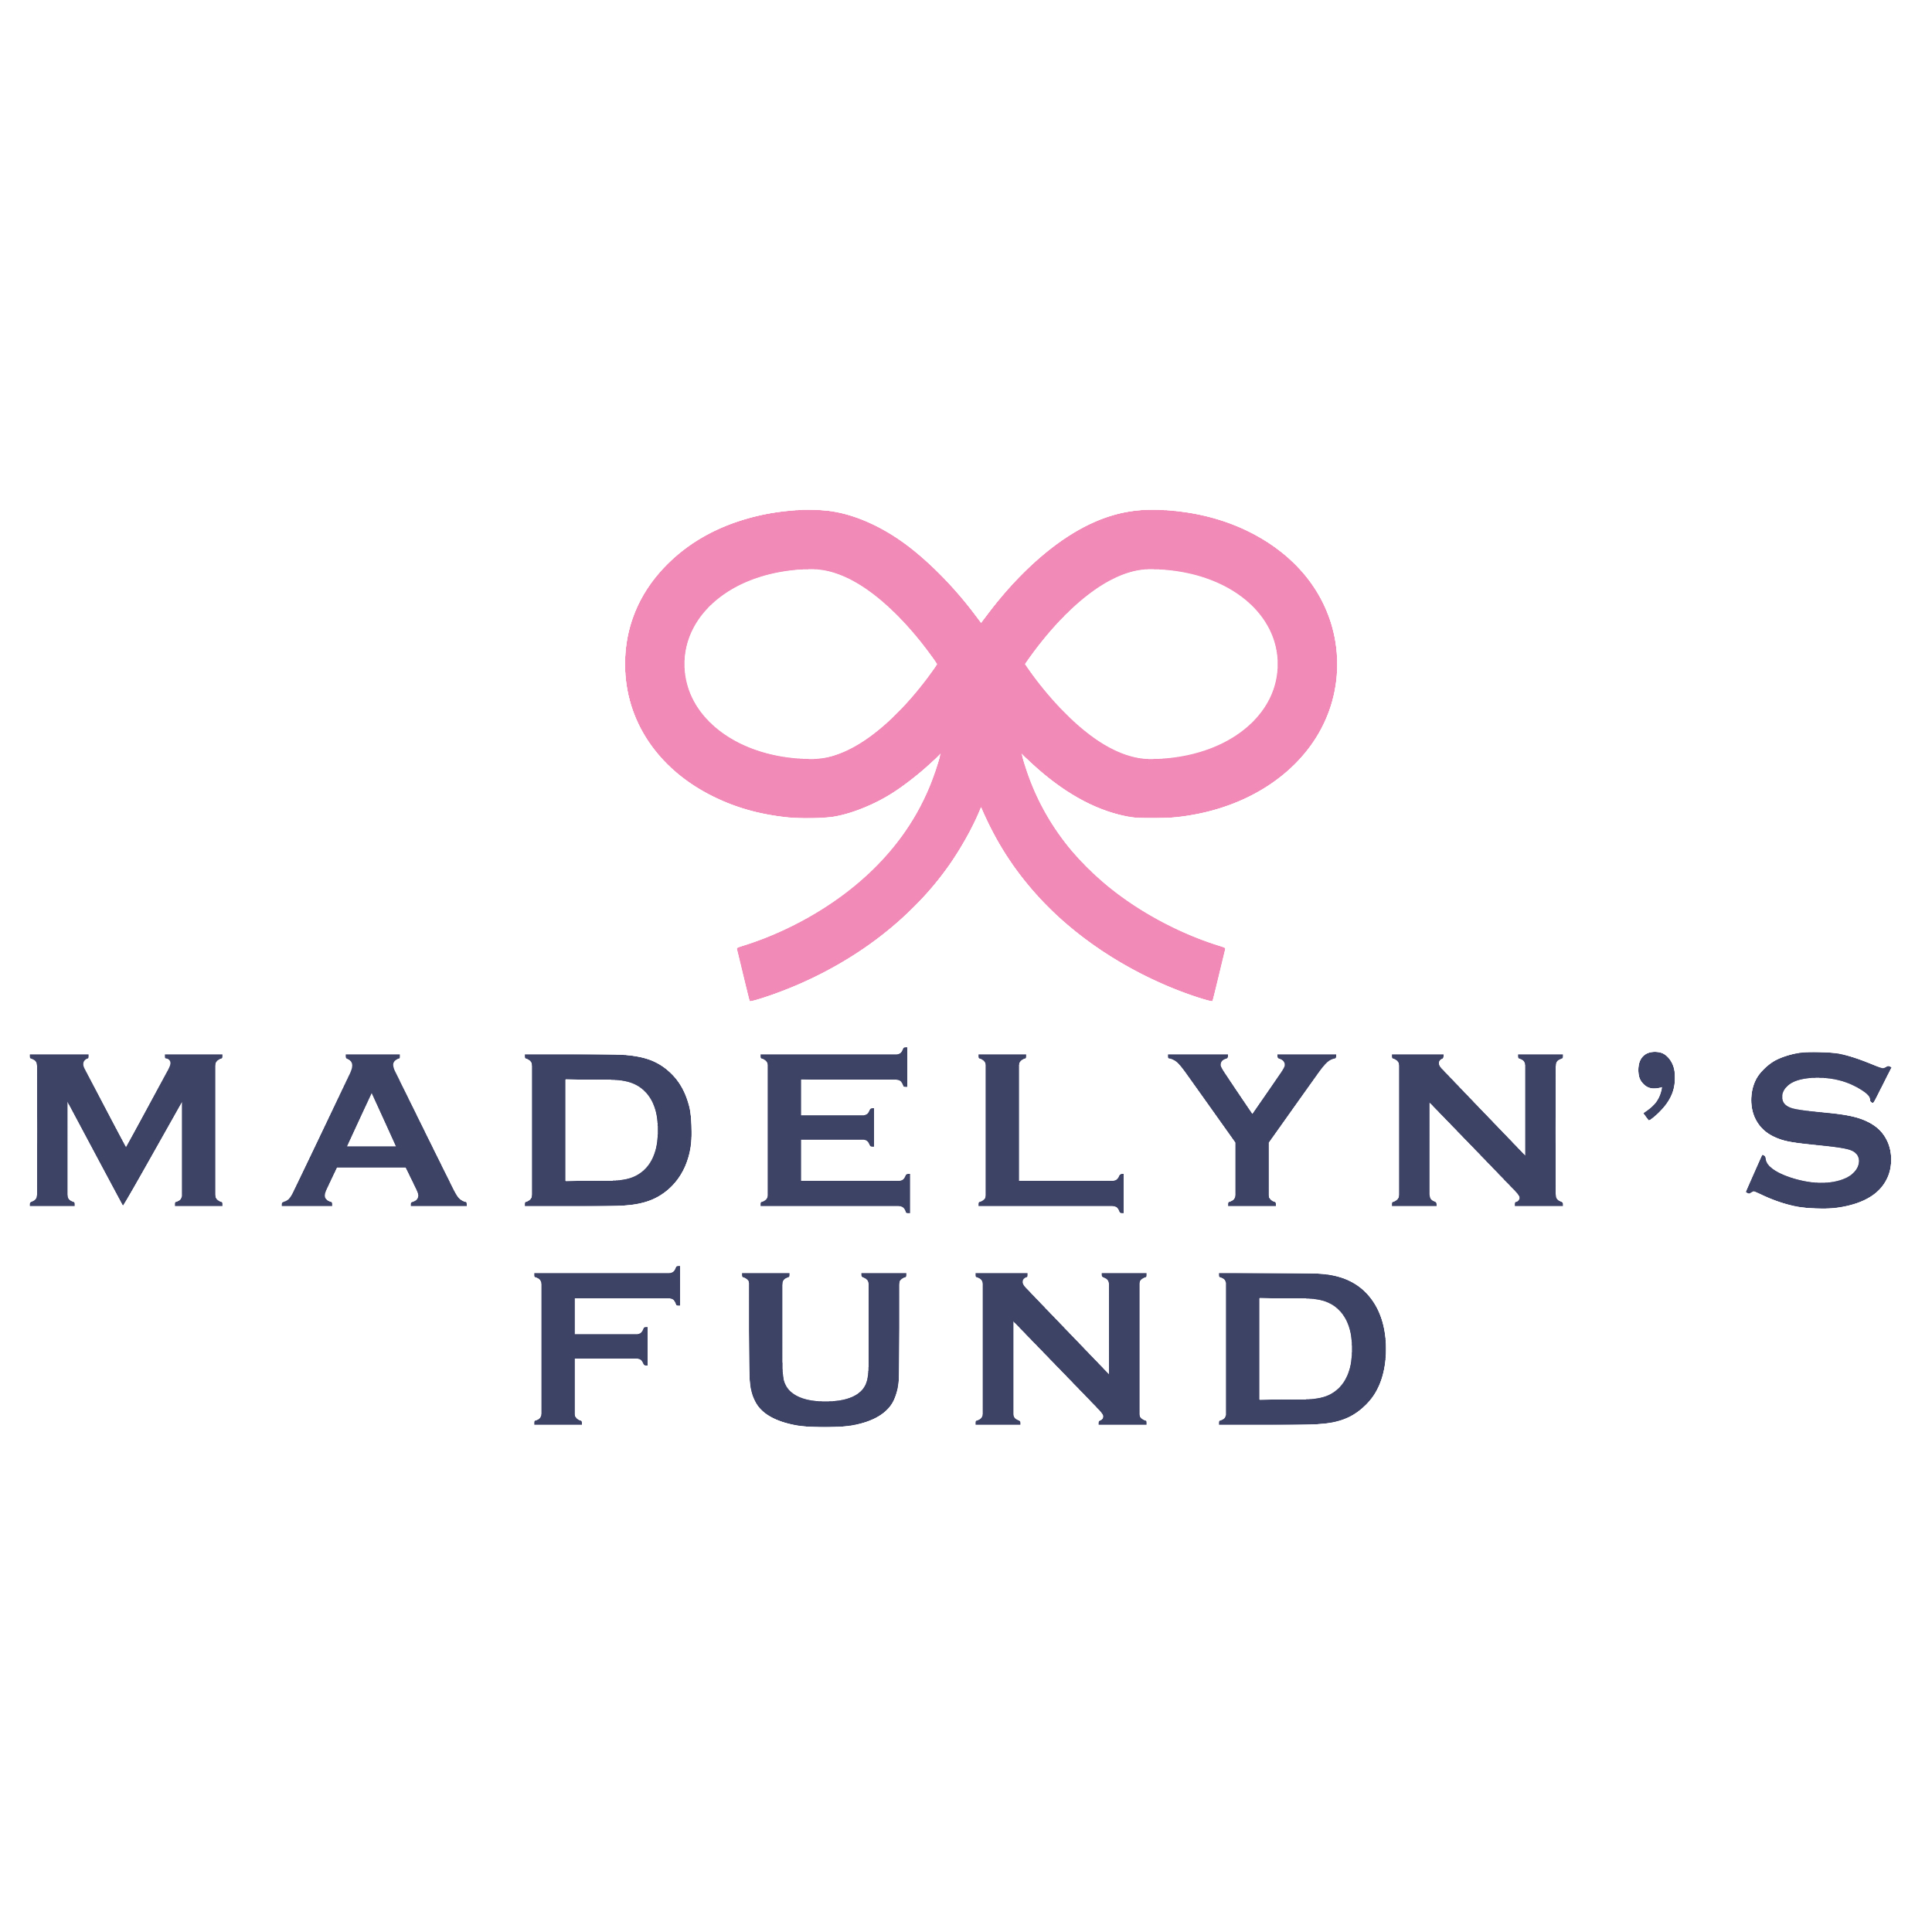 Madelyn's Fund